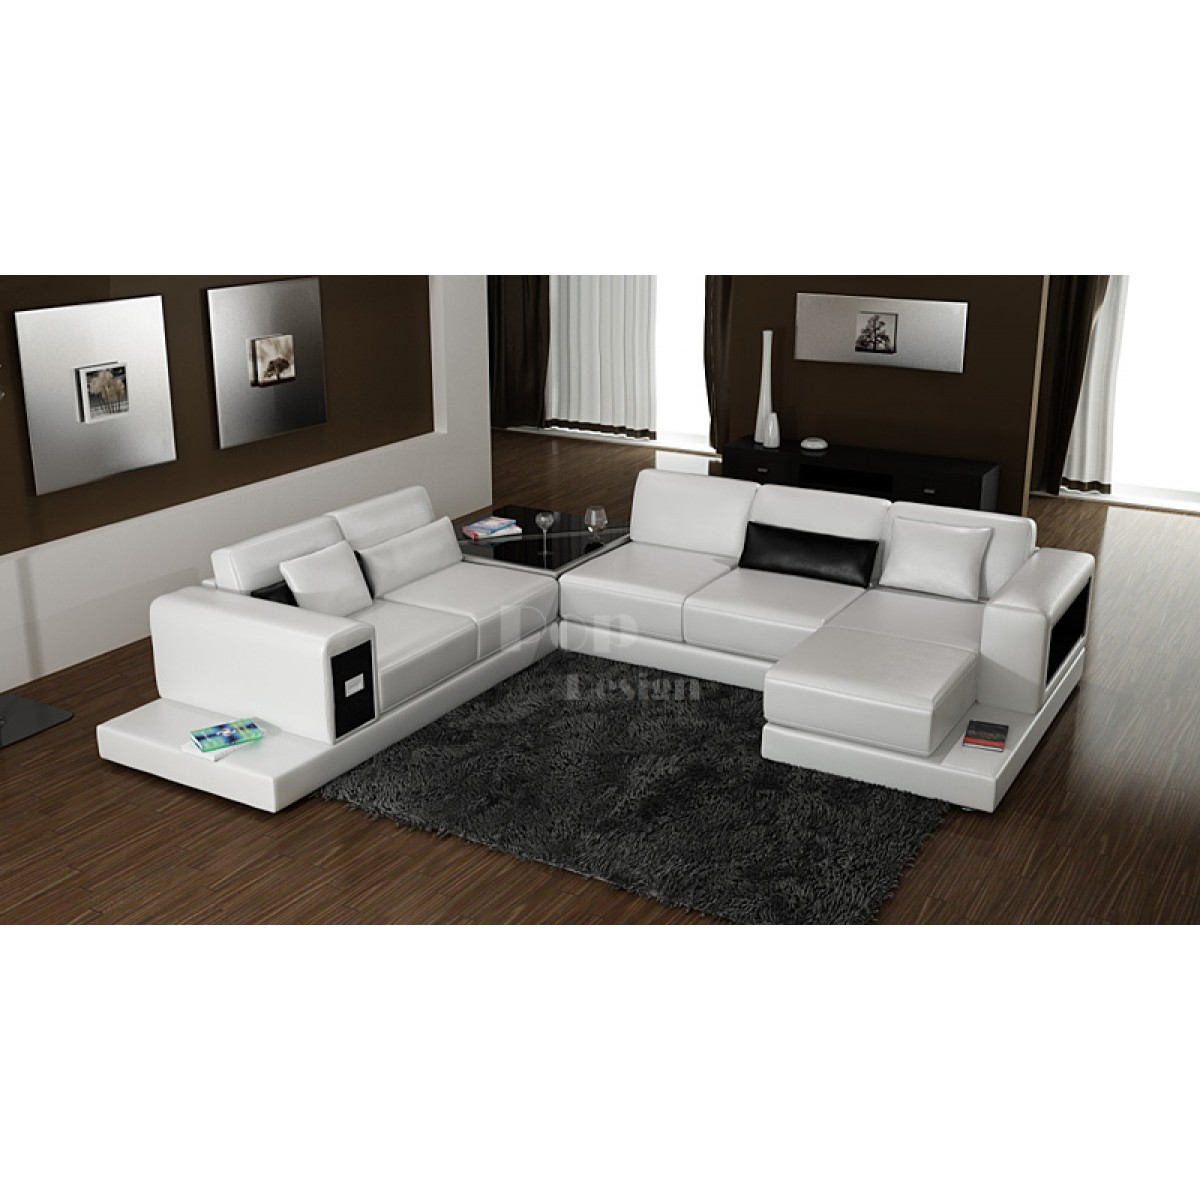 Canap d 39 angle design panoramique en cuir arezzo xxl pop for Canape design cuir